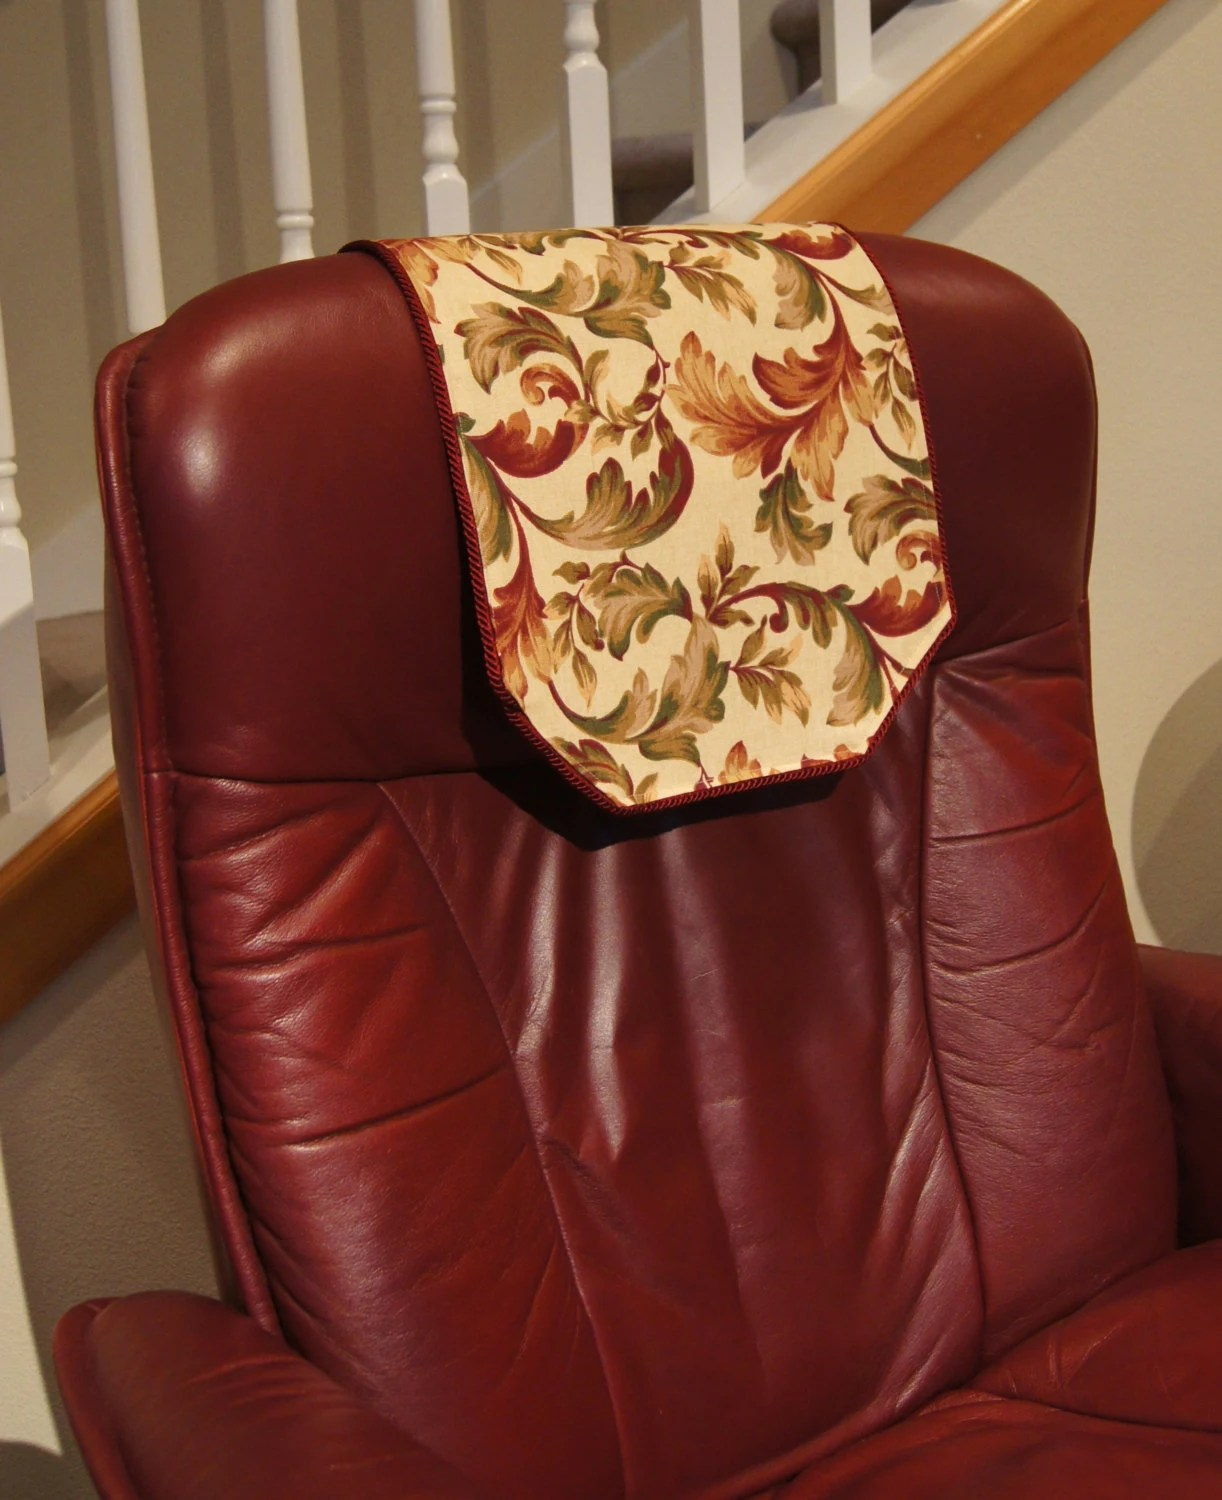 chair covers for headrest cover rentals belleville recliner burgundy floral by